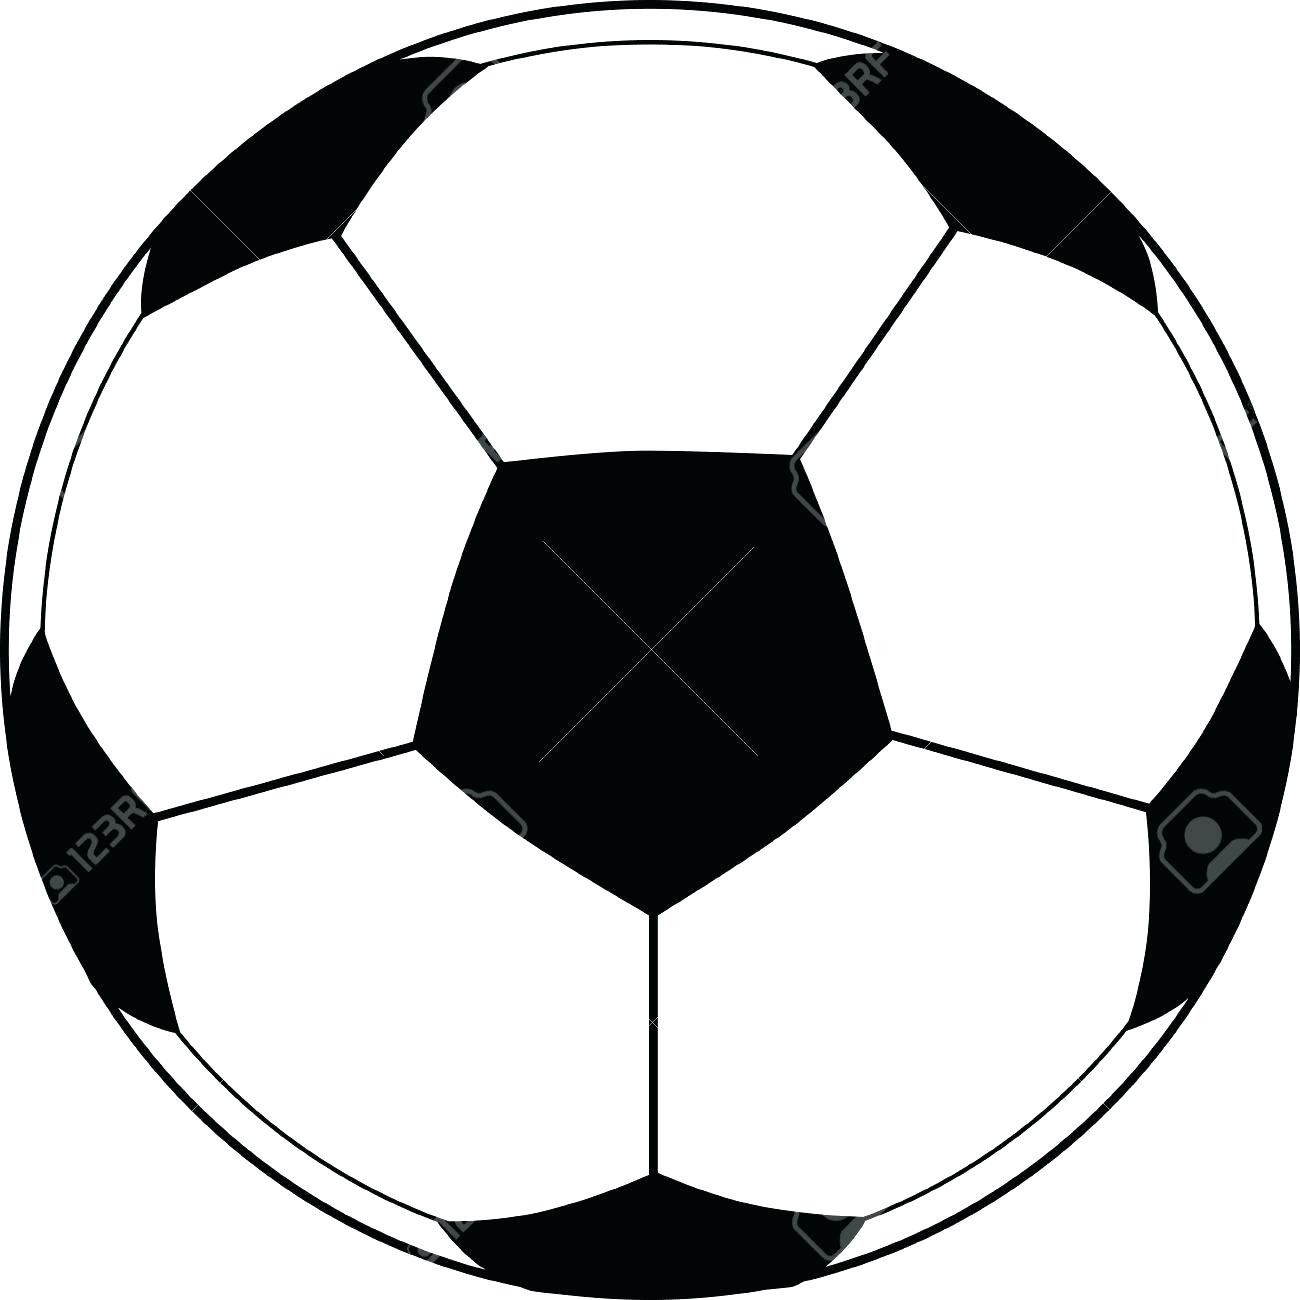 Big Soccer Ball Coloring Pages Printable Coloring Page For Kids Coloring Pages Printable Coloring Pages Bee Coloring Pages